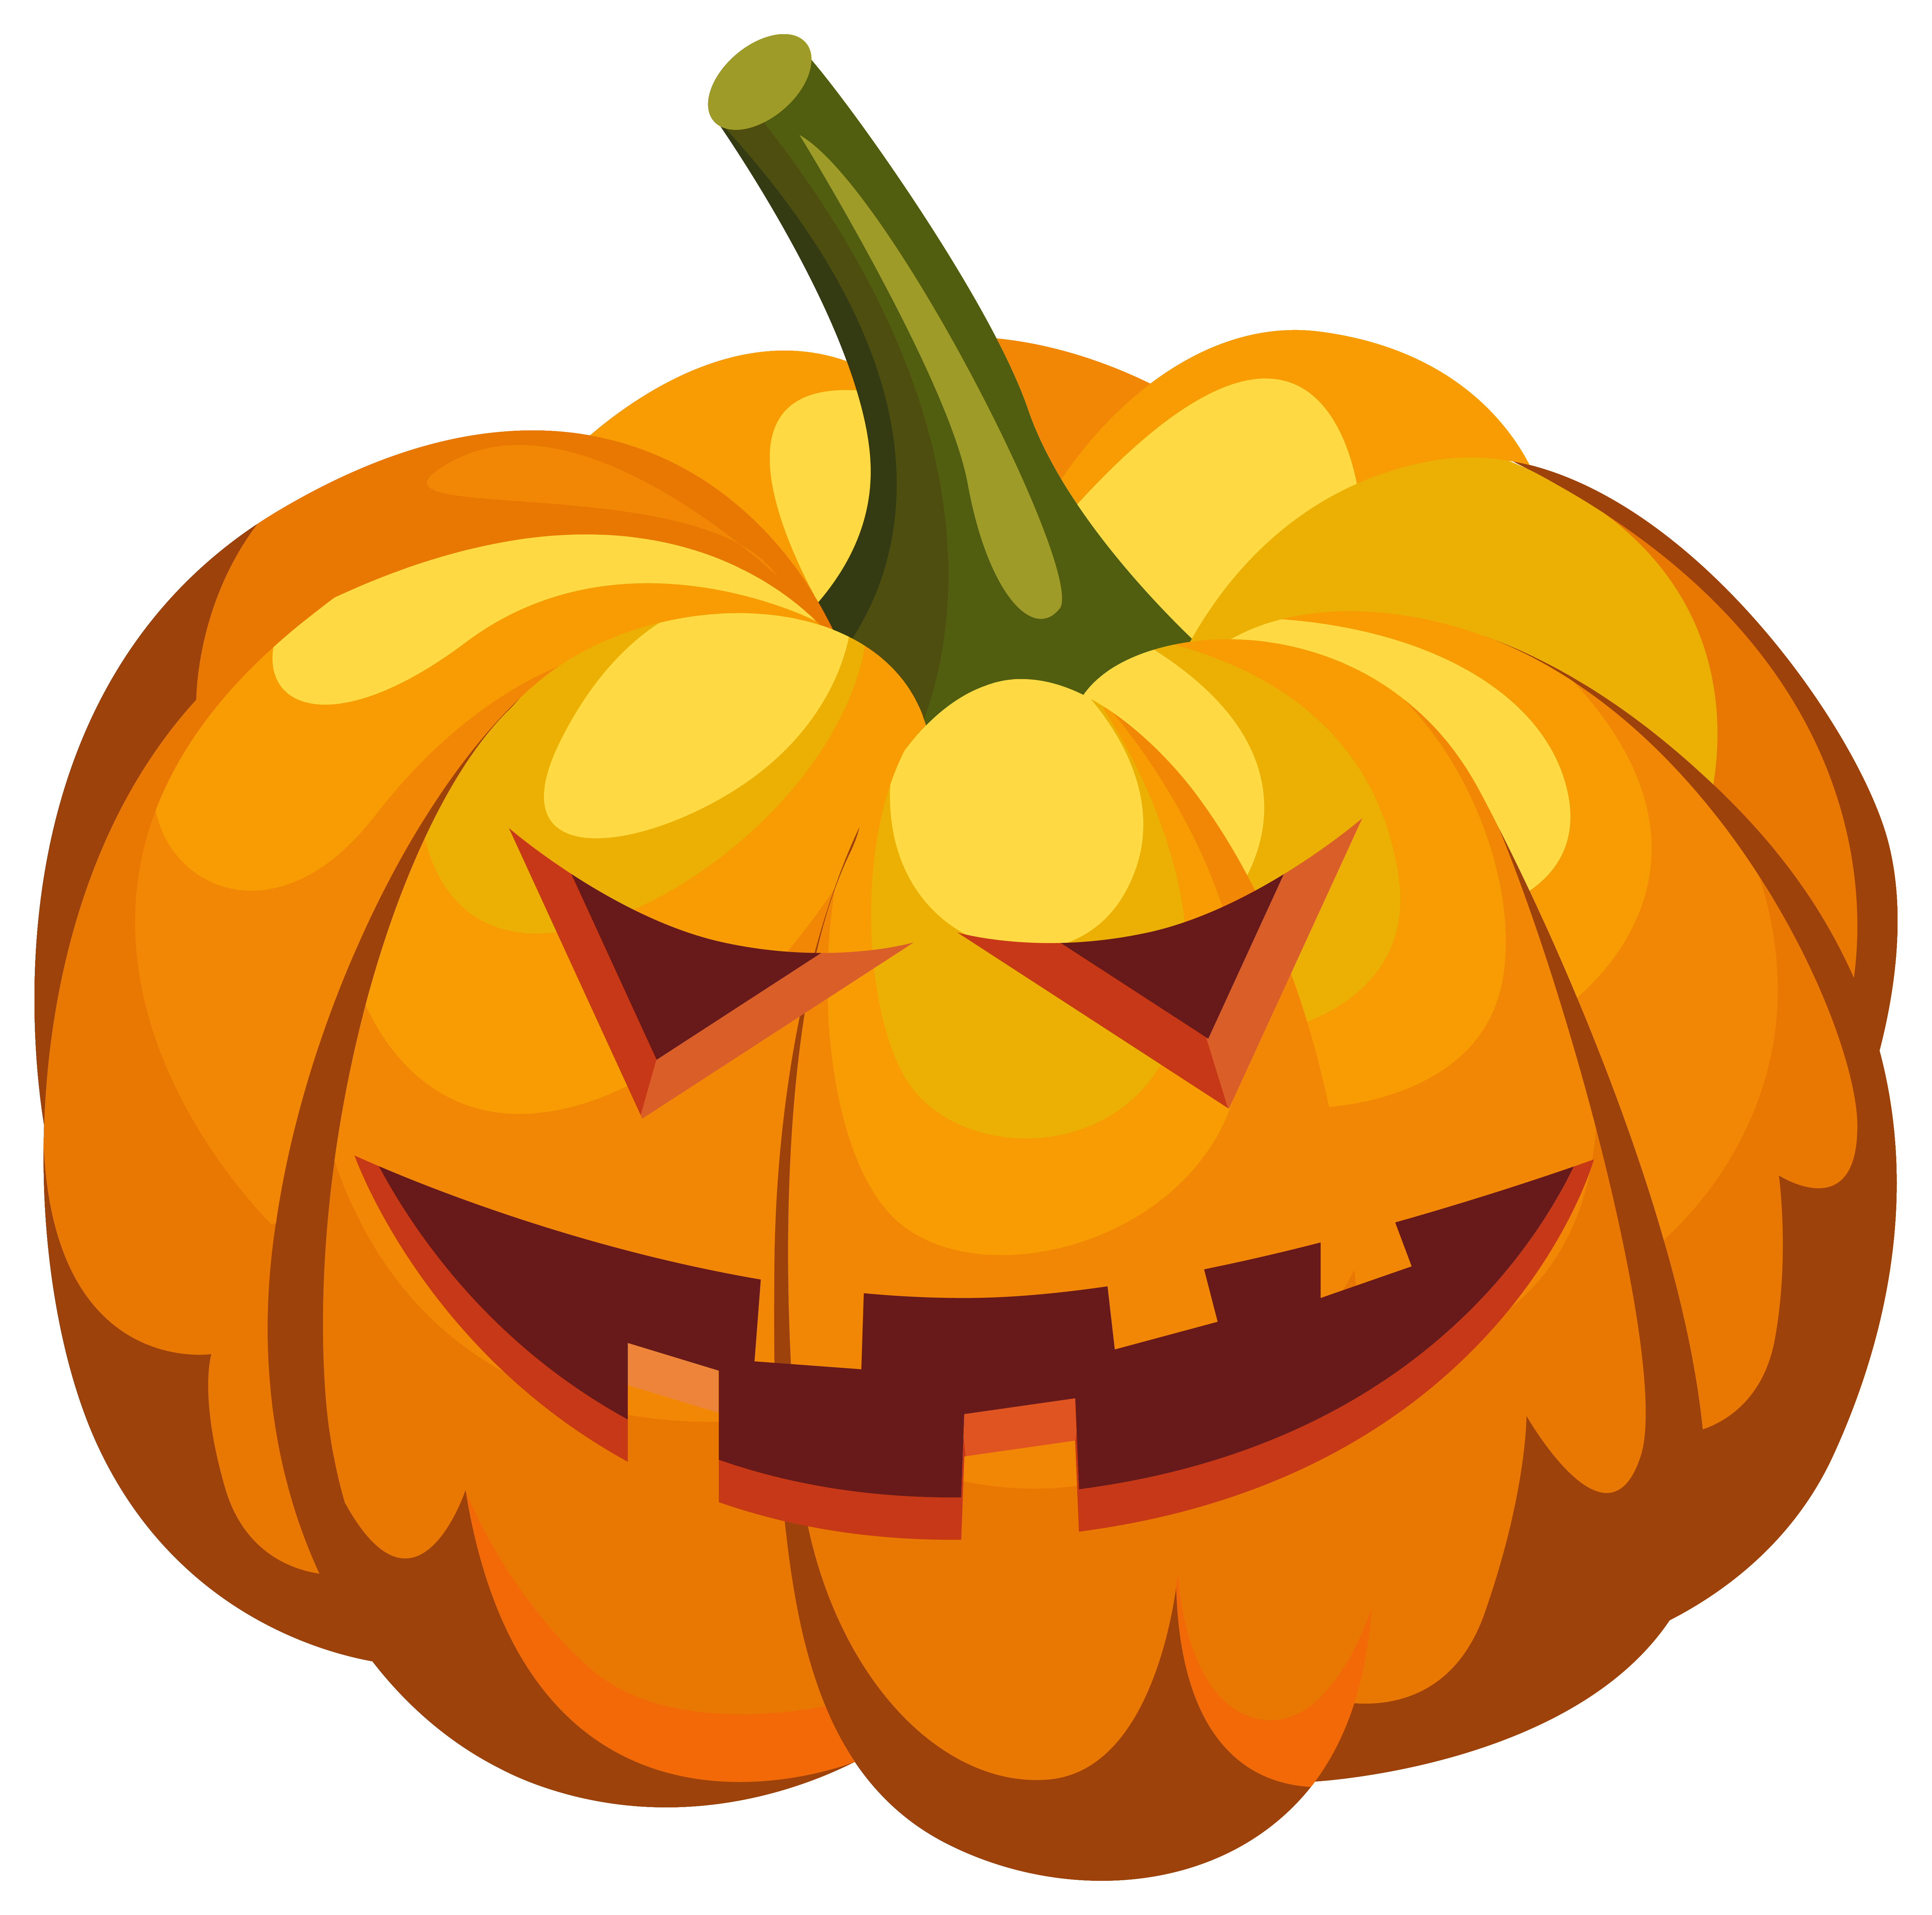 Scary clipart pumpkin. Lantern png image gallery